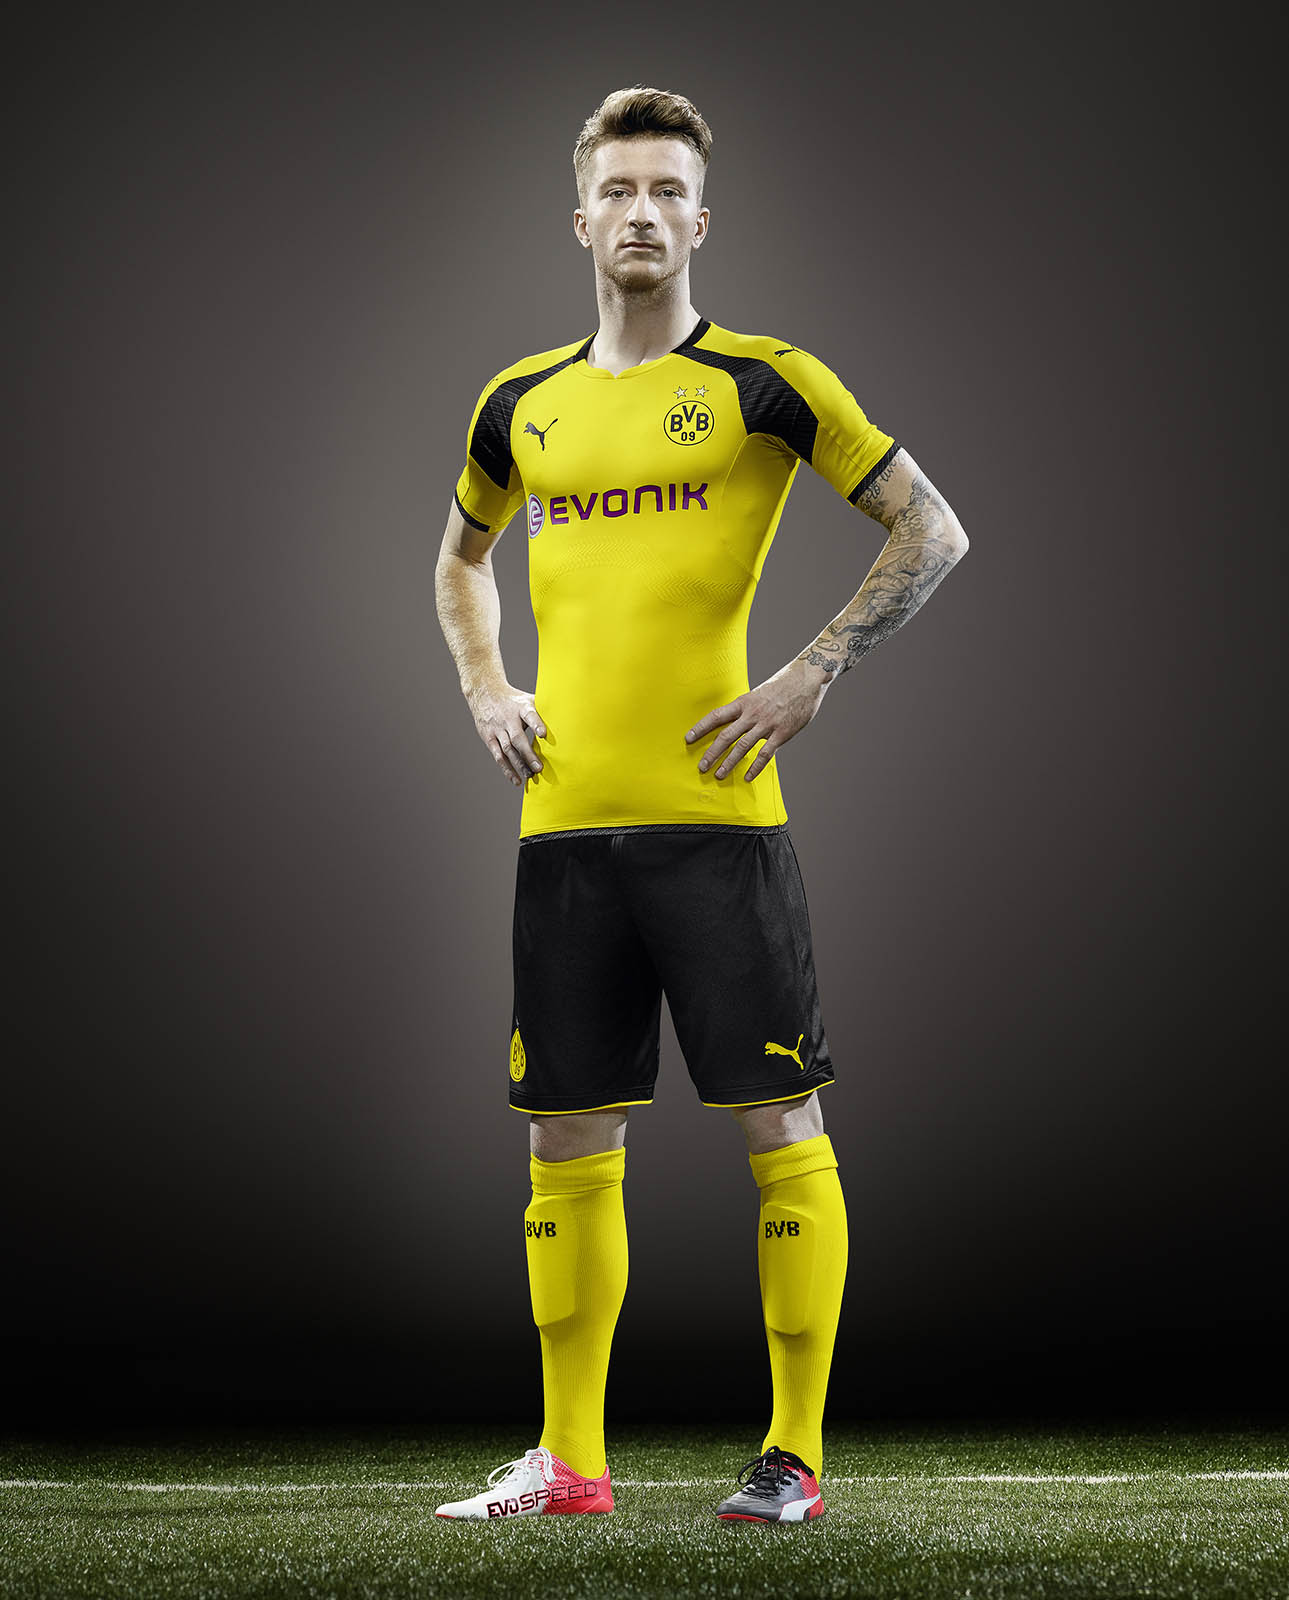 borussia dortmund release a brand new kit for the. Black Bedroom Furniture Sets. Home Design Ideas